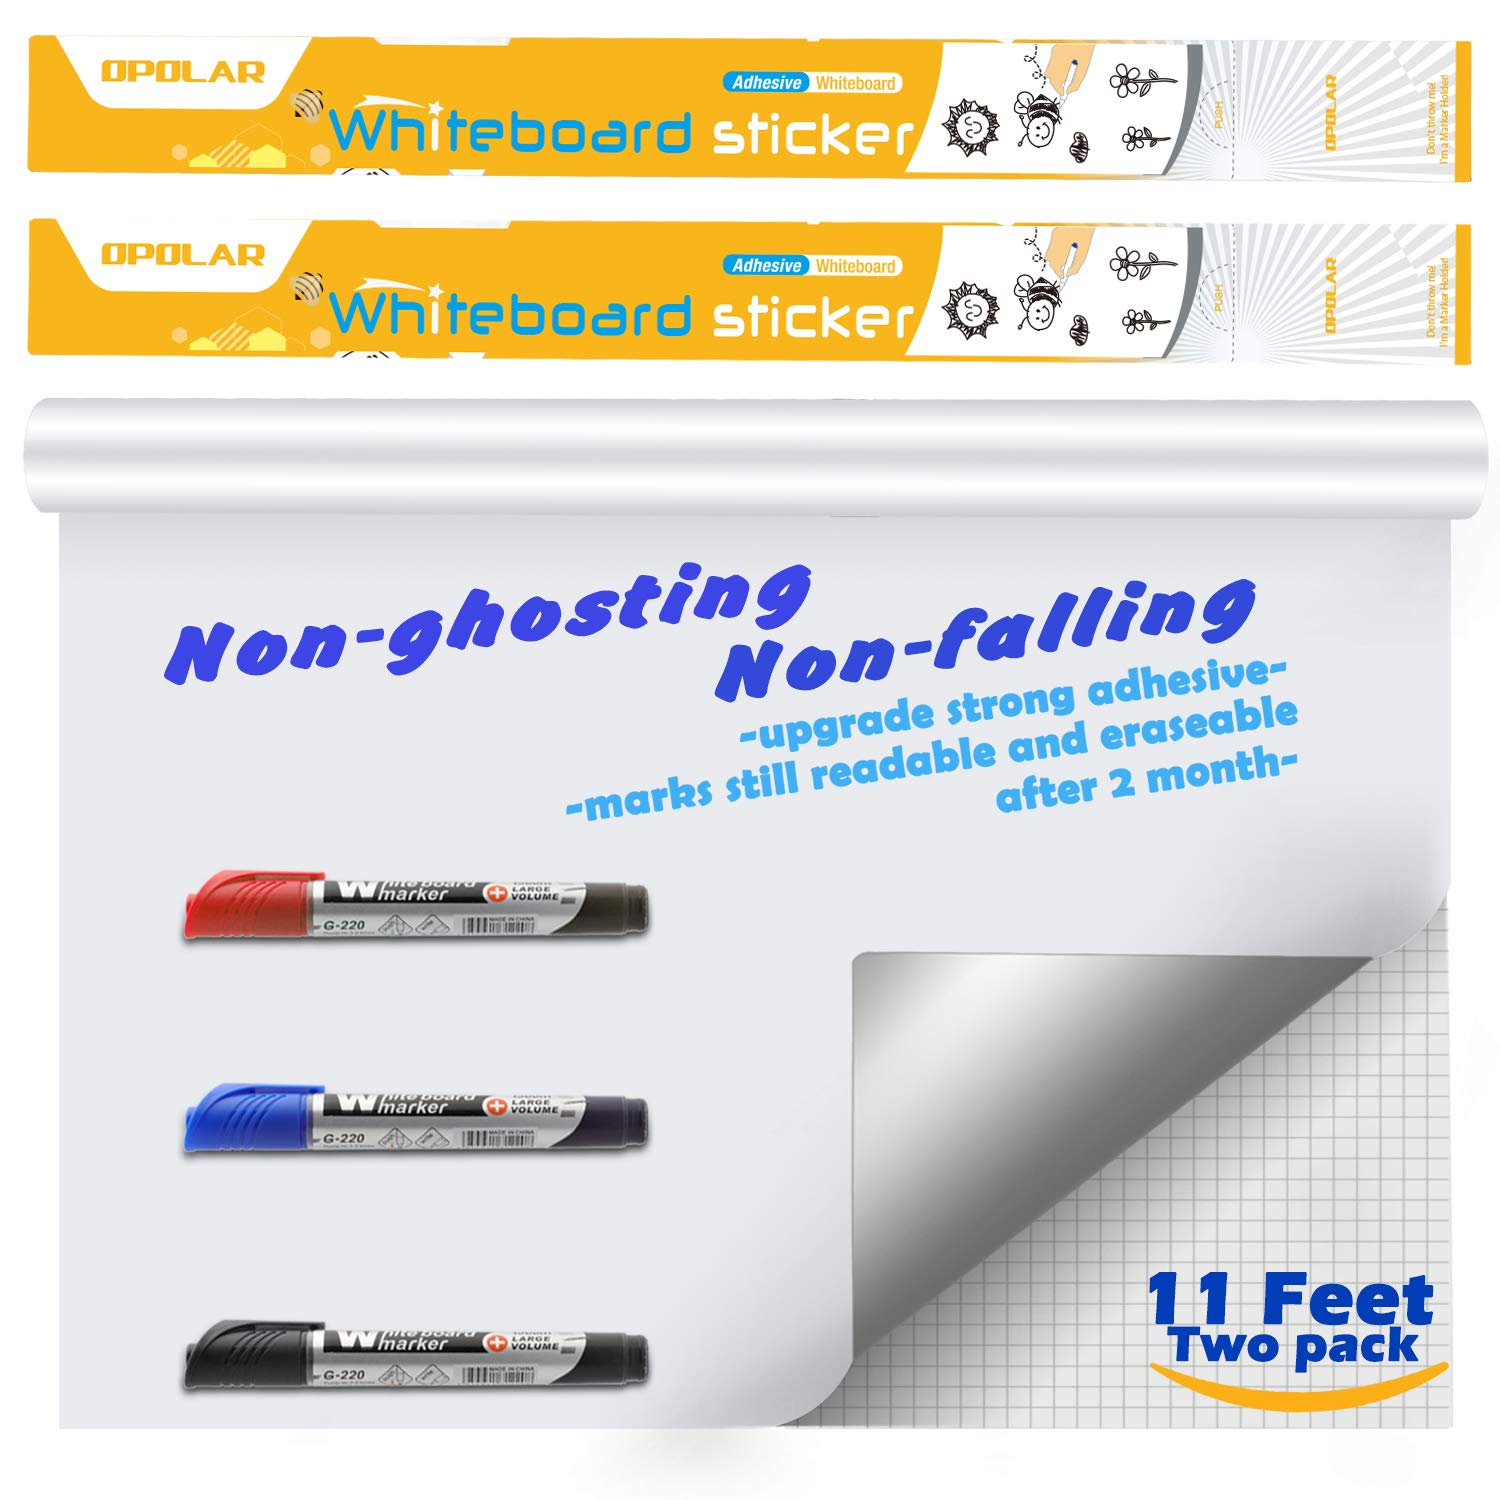 Whiteboard Sticker Paper Sheets, Easy Peel and Stick Dry Erase Contact Paper Upgrade 11 Ft Extra Wide, Self Adhesive Wall Paper Roll Pack of 2 for ...